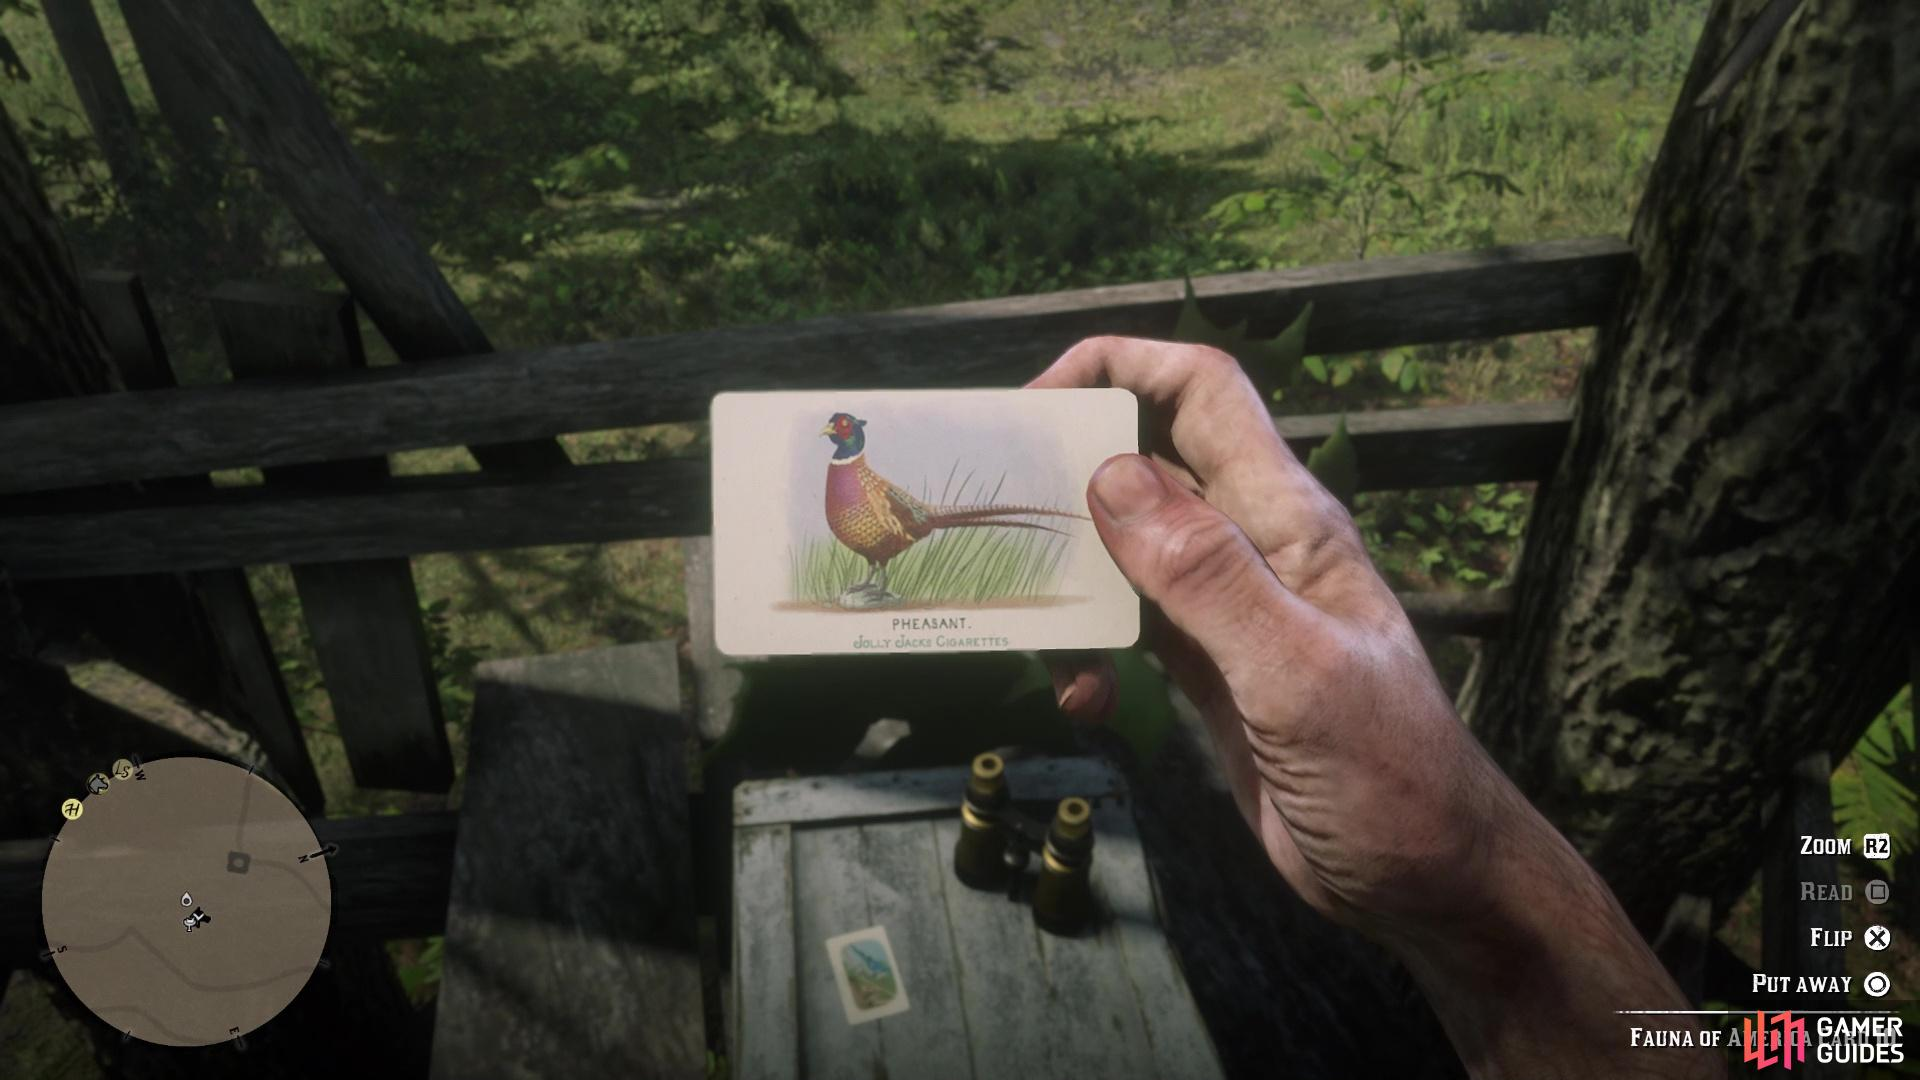 The Pheasant card is found in the same spot as the Blue Jay card